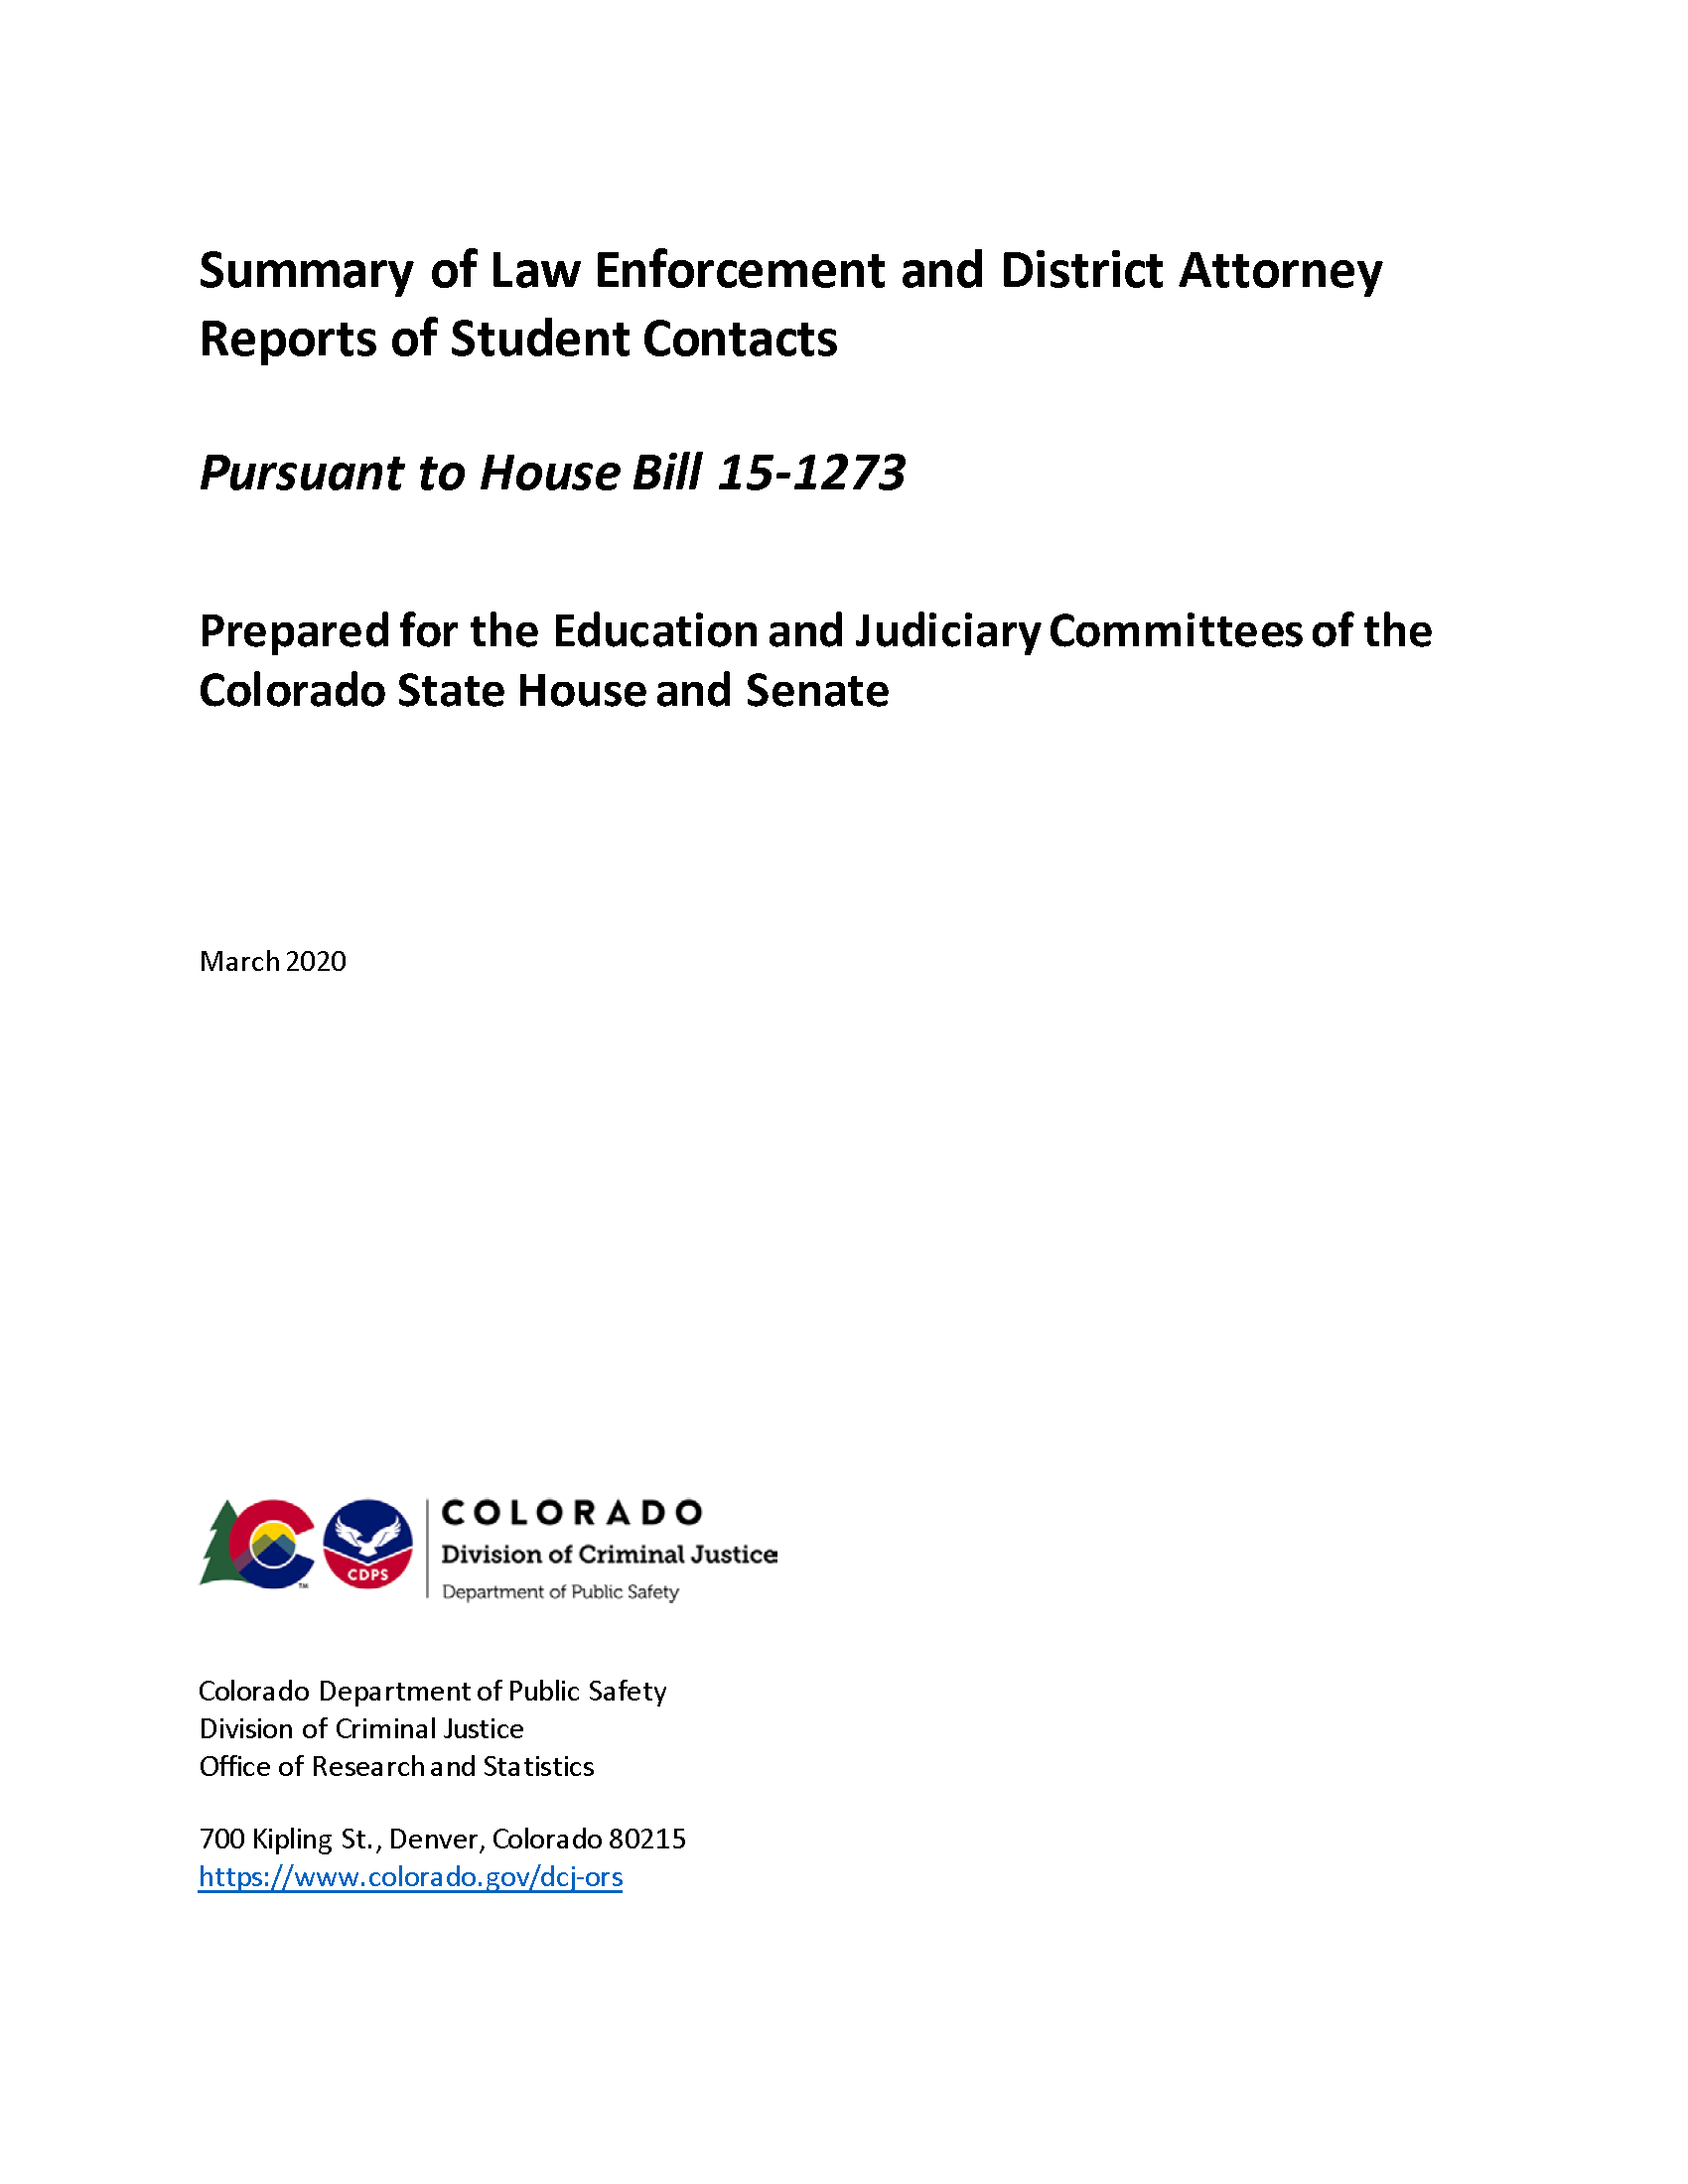 Summary of Law Enforcement and District Attorney Reports of Student Contacts (March 2020)